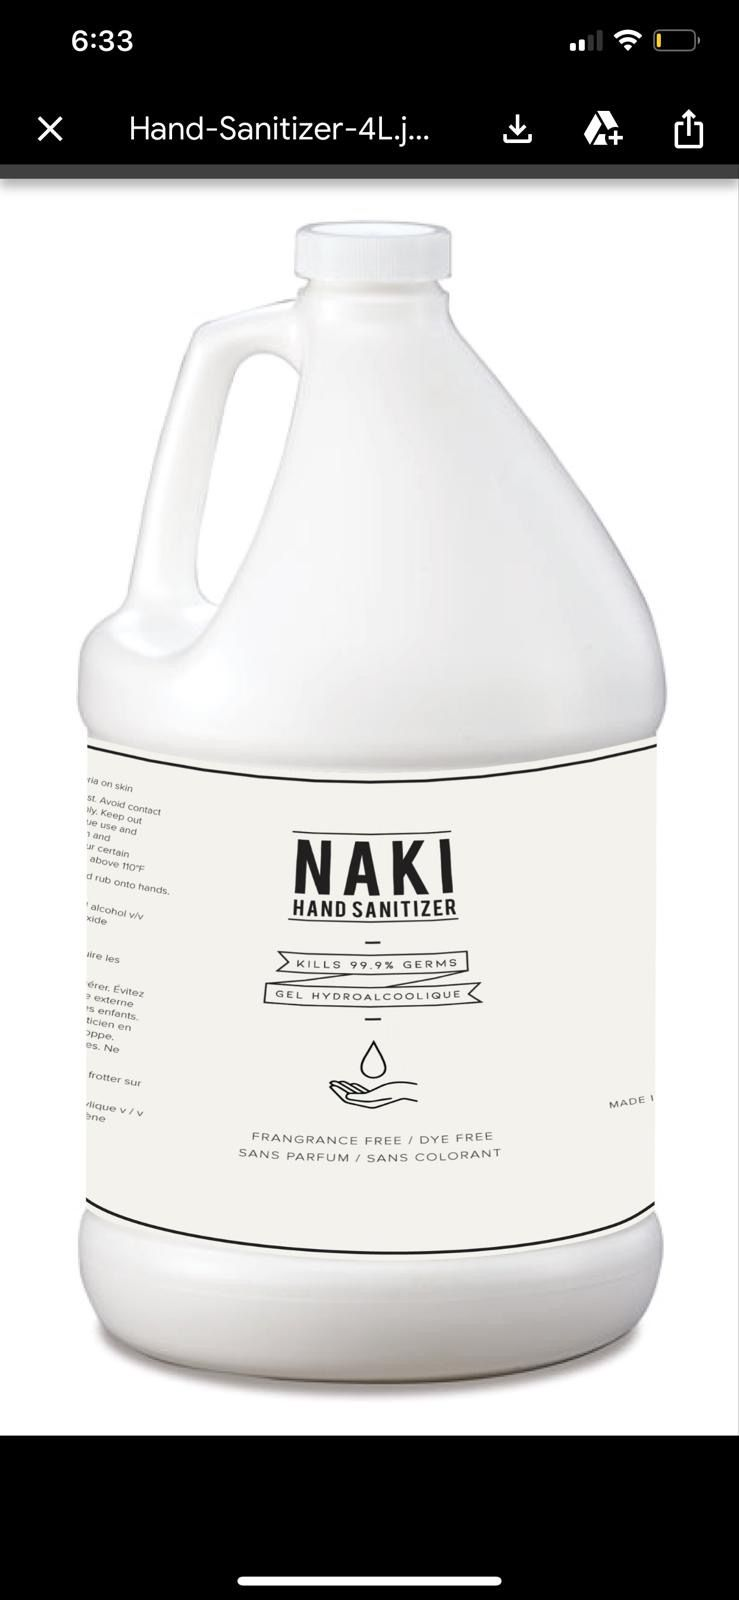 HAND SANITIZER NAKI 1 GALLON BOTTLE npn 80099298